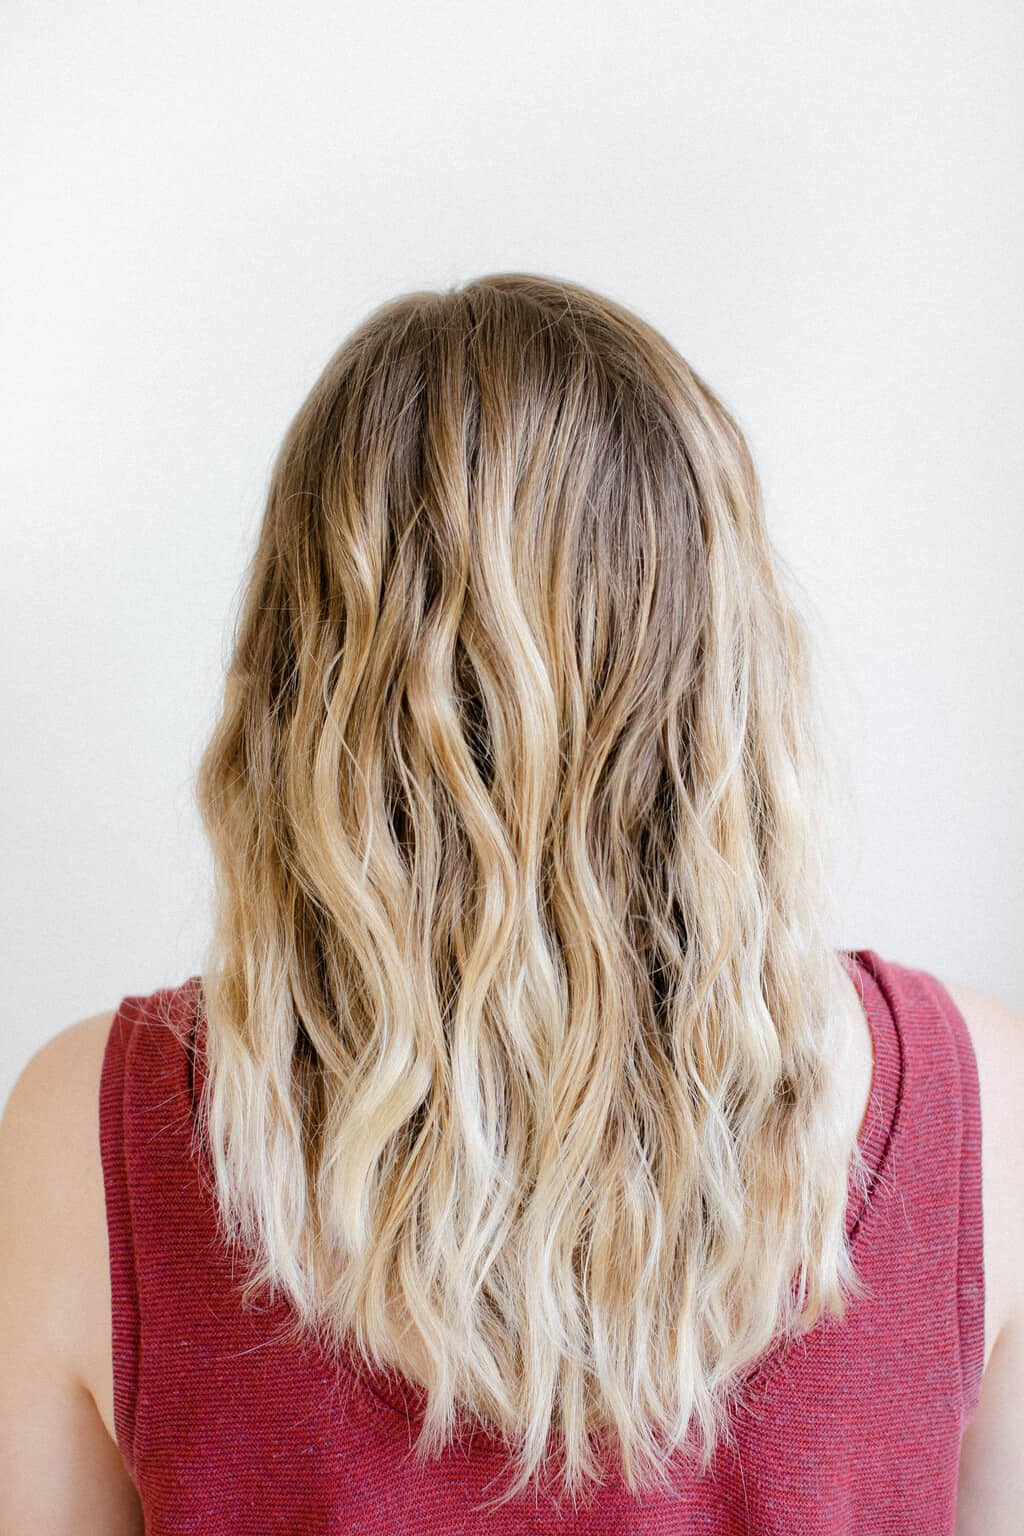 Effortless beachy waves overnight by Hello Glow